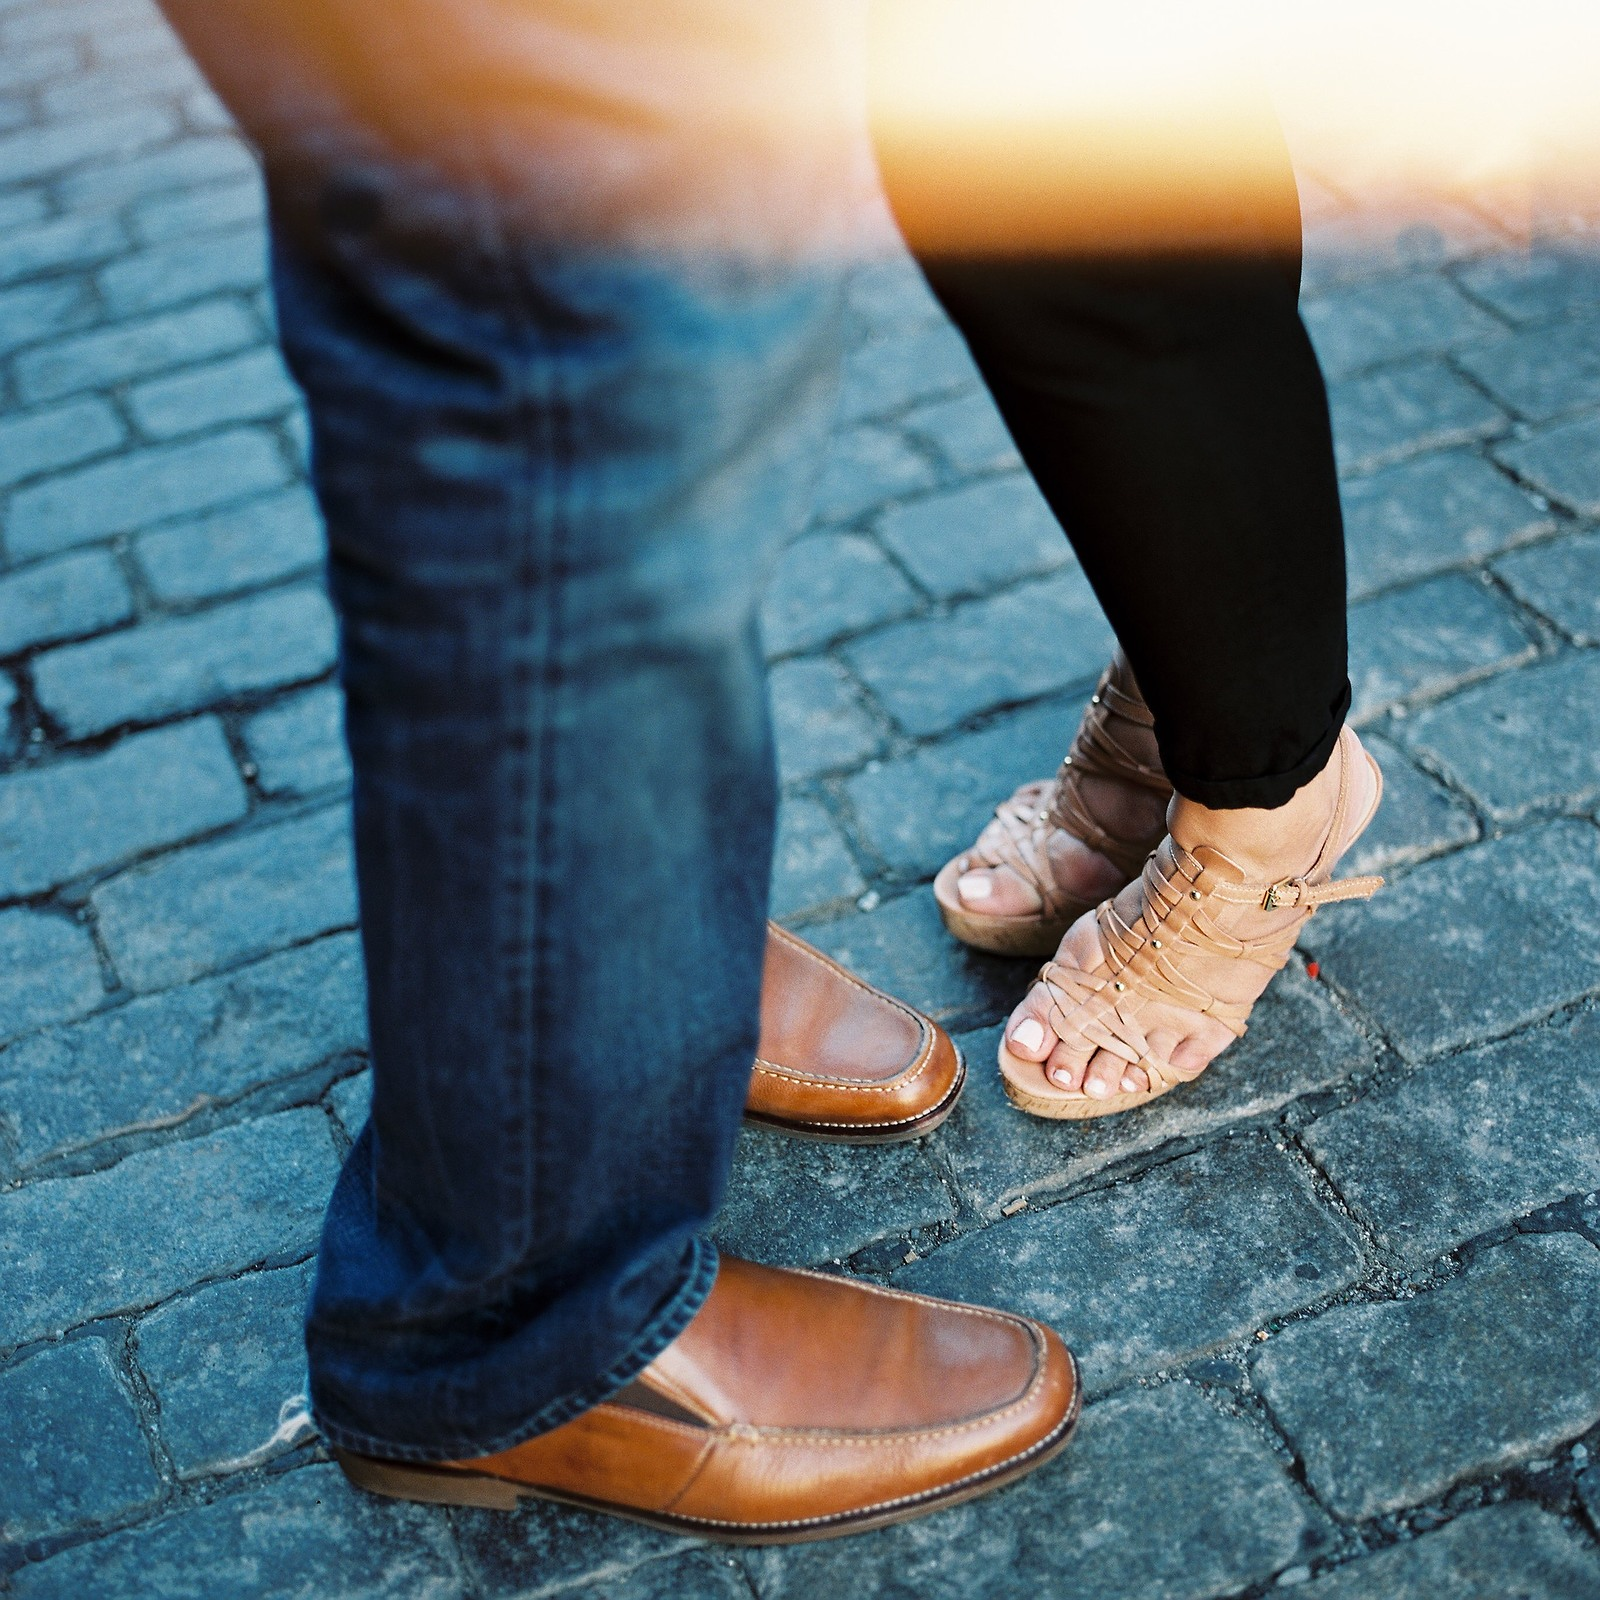 nyc noho engagement photos of shoes by wendy g photography